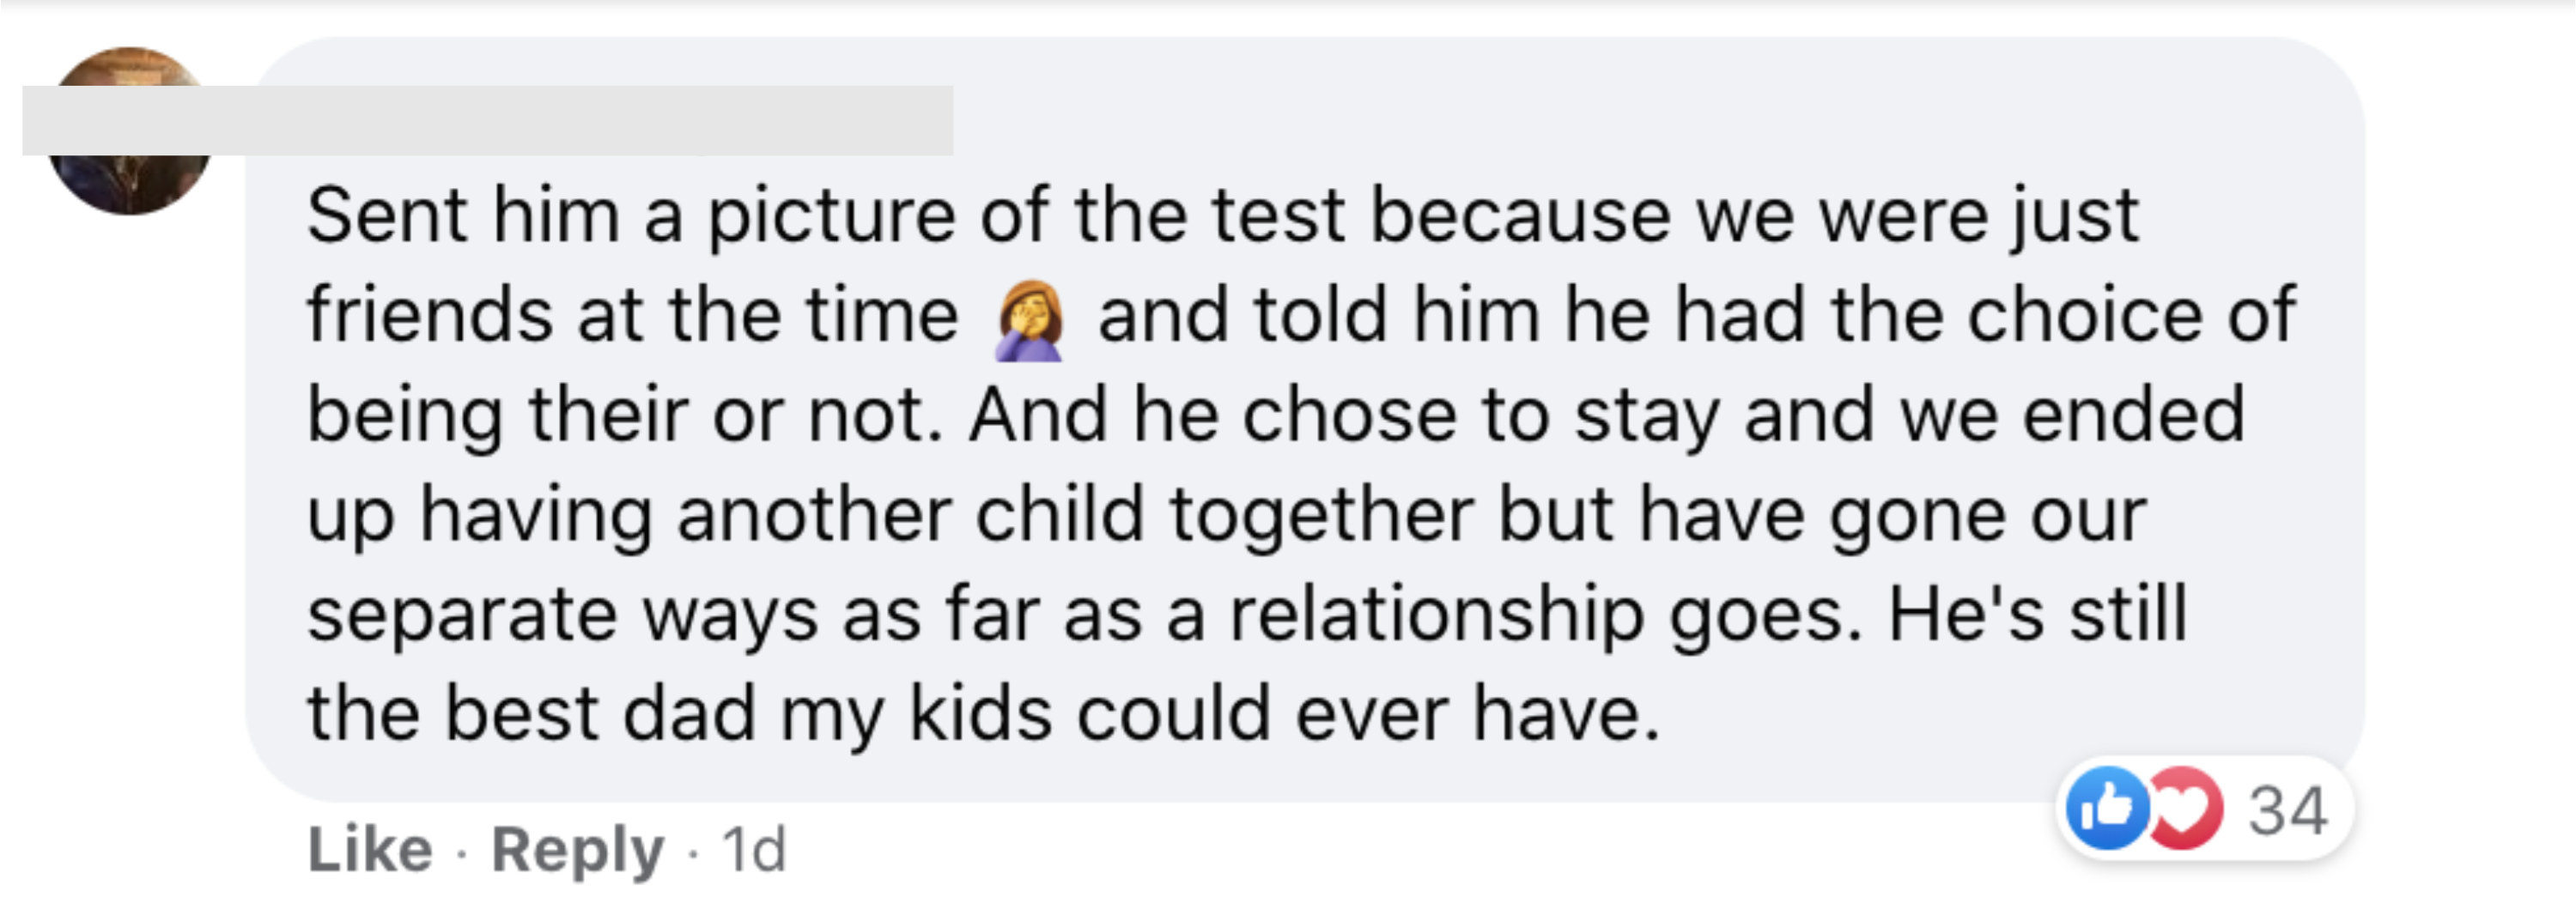 Sent him a picture of the test because we were just friends at the time and told him he had the choice of being their or not And he chose to stay and we ended up having another child together